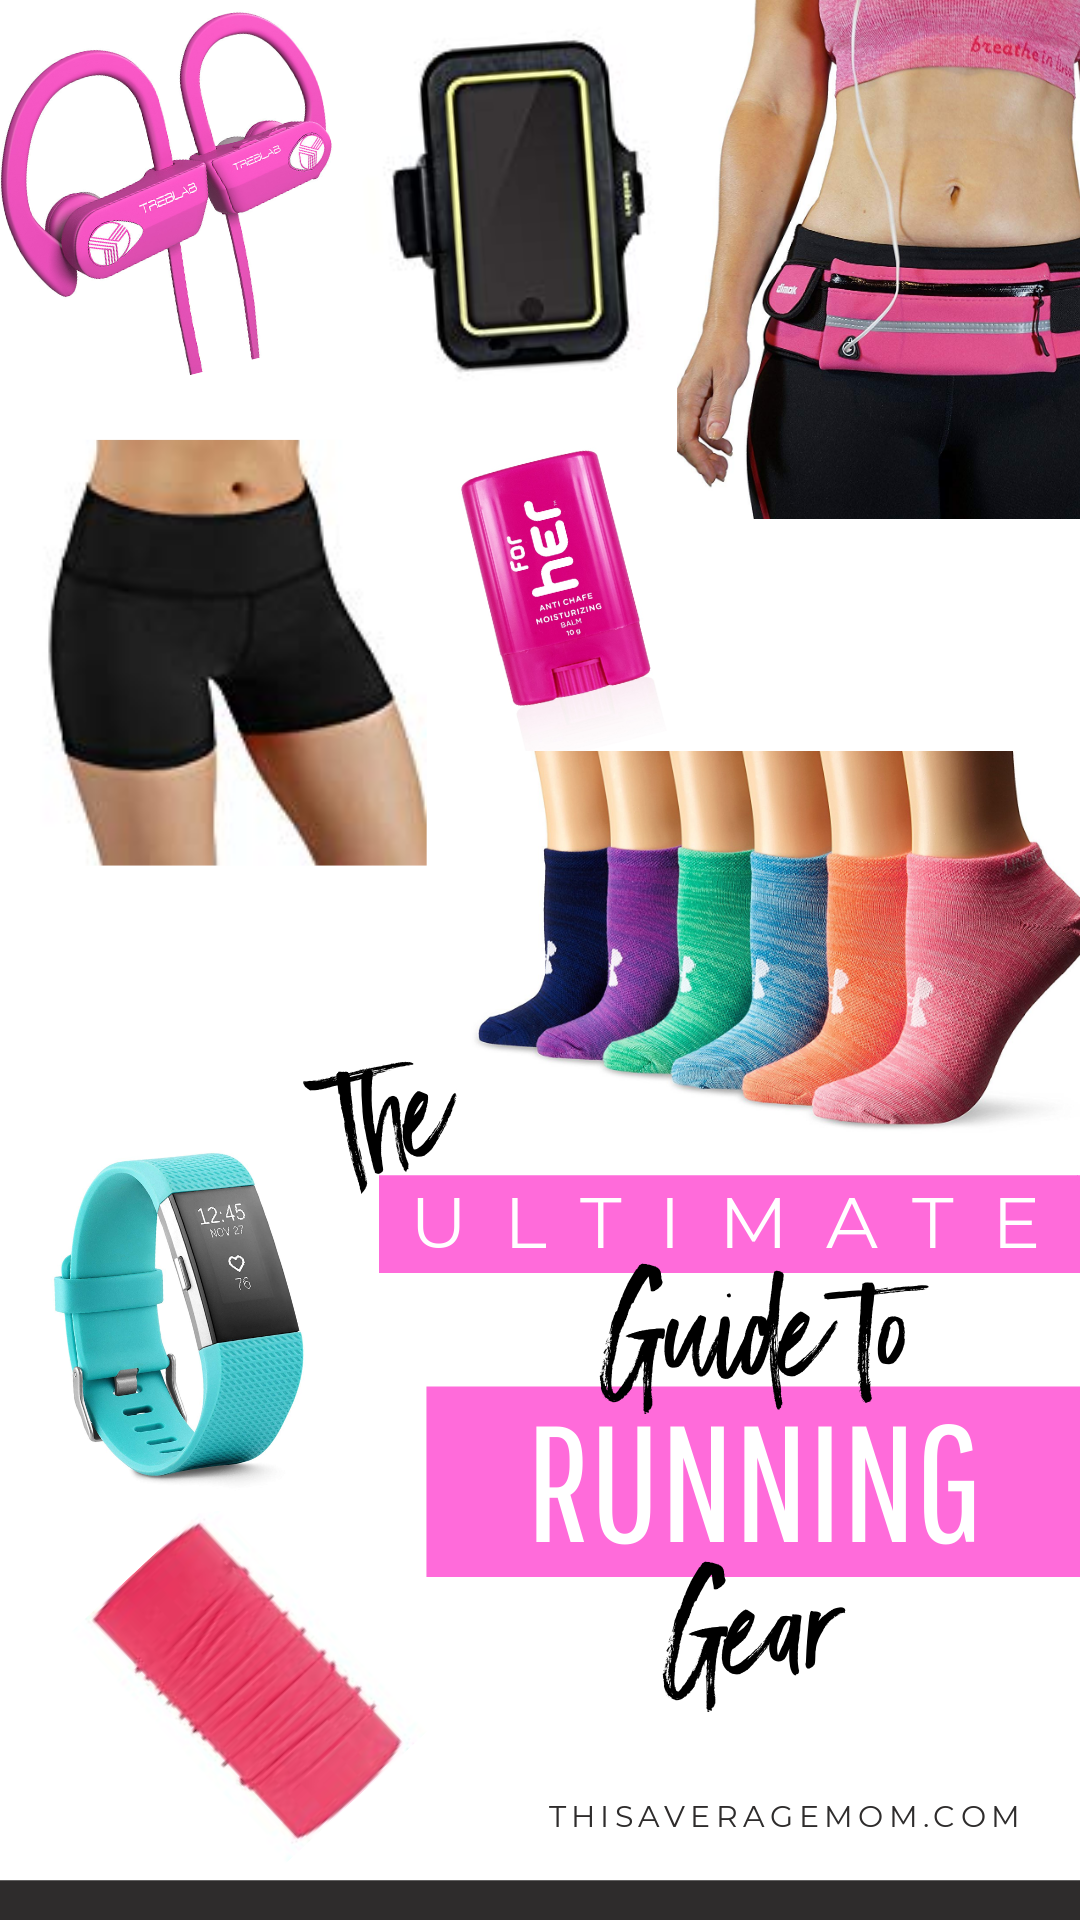 If you are a runner, you know there's a few things that make your run a more pleasant experience. Today, I'm sharing The Ultimate Guide to Running Gear, for those that may be thinking about running, or are a beginner or intermediate runner. #run #running #fitness